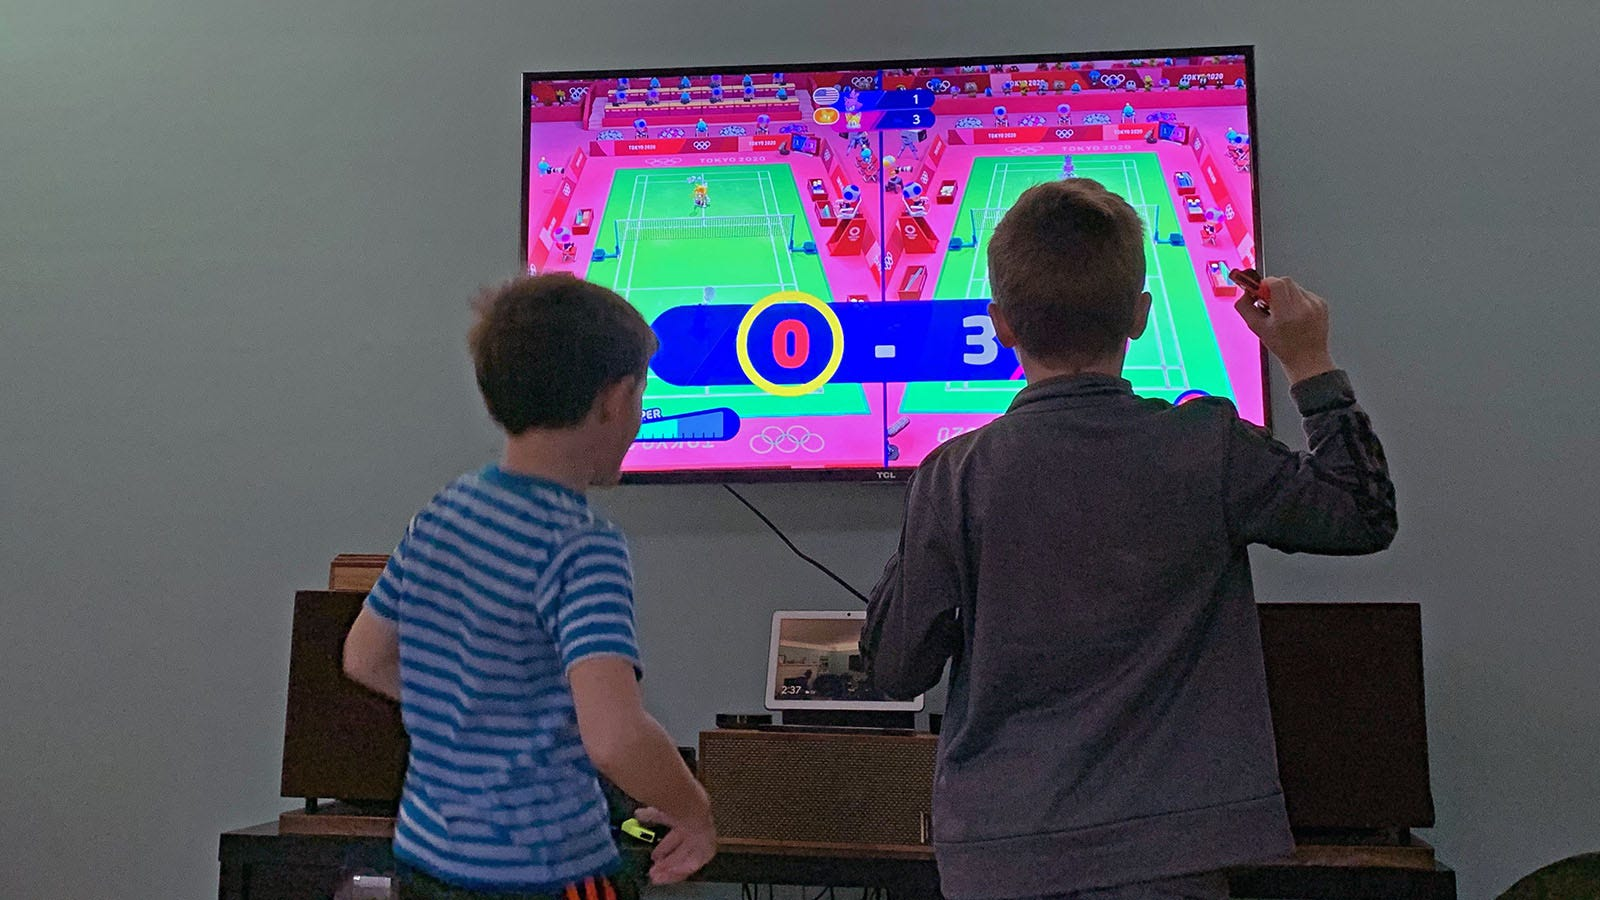 Two young boys playing a game of tennis on Nintendo Switch